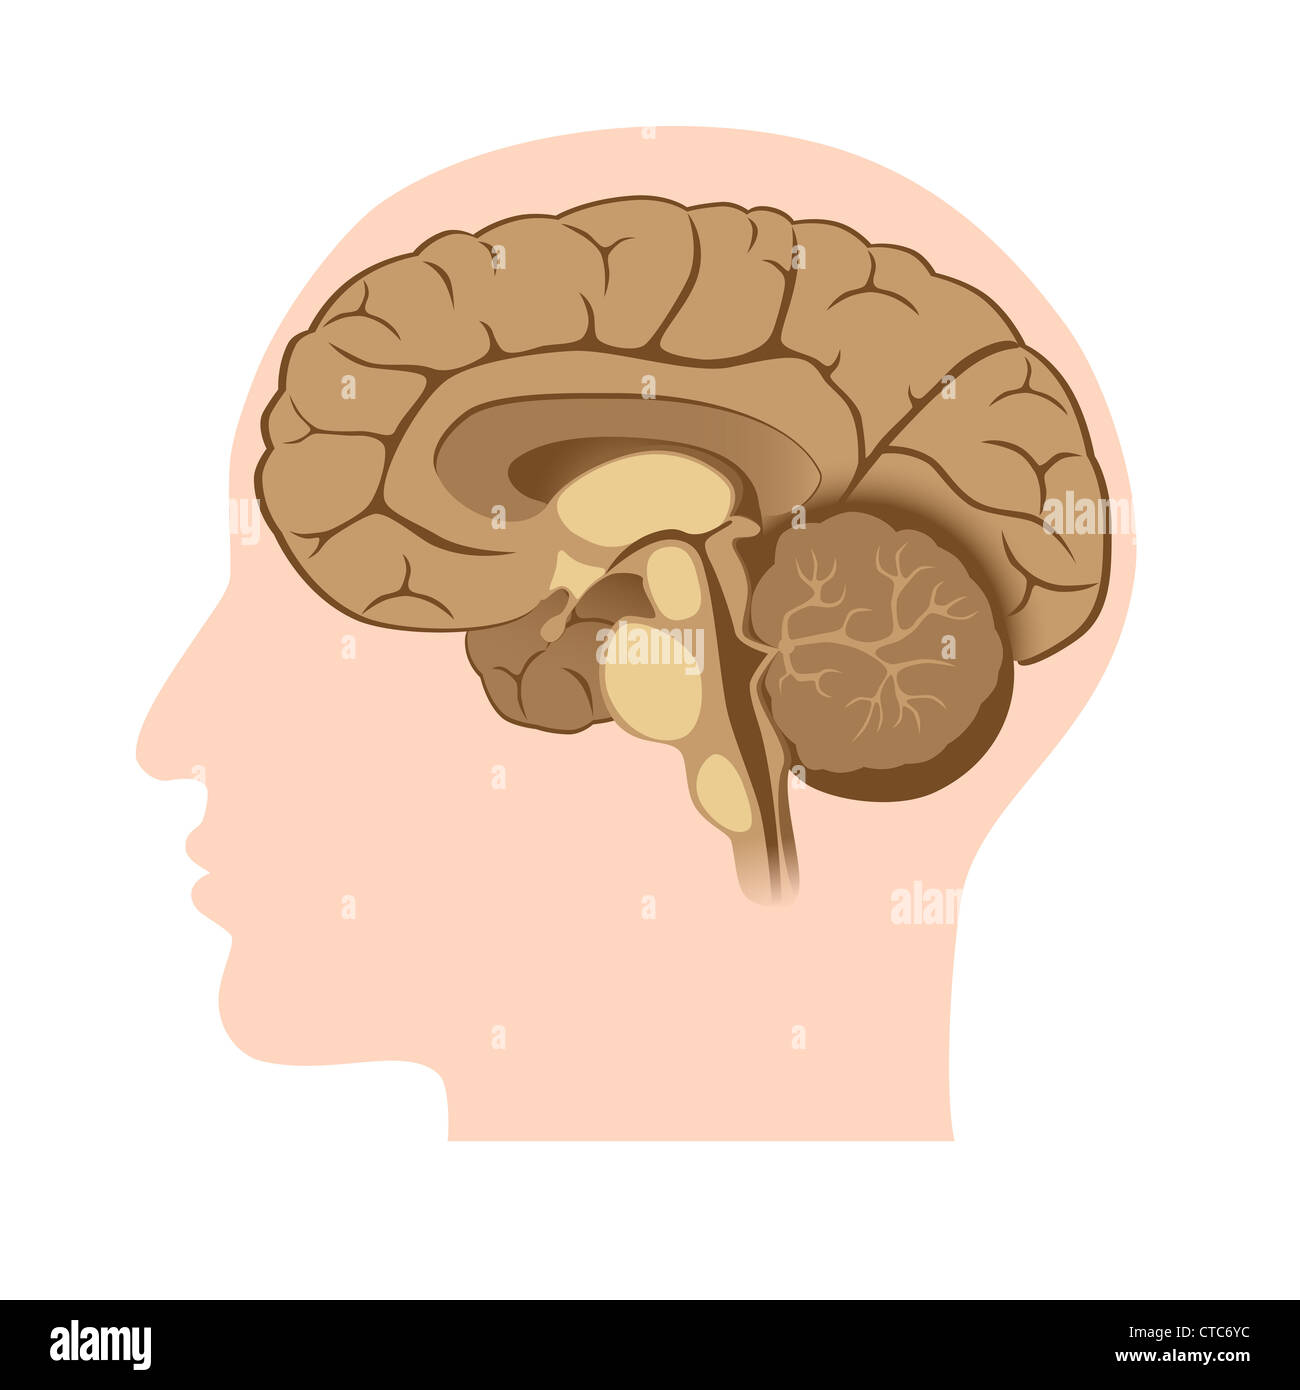 Median Brain Stock Photos & Median Brain Stock Images - Alamy